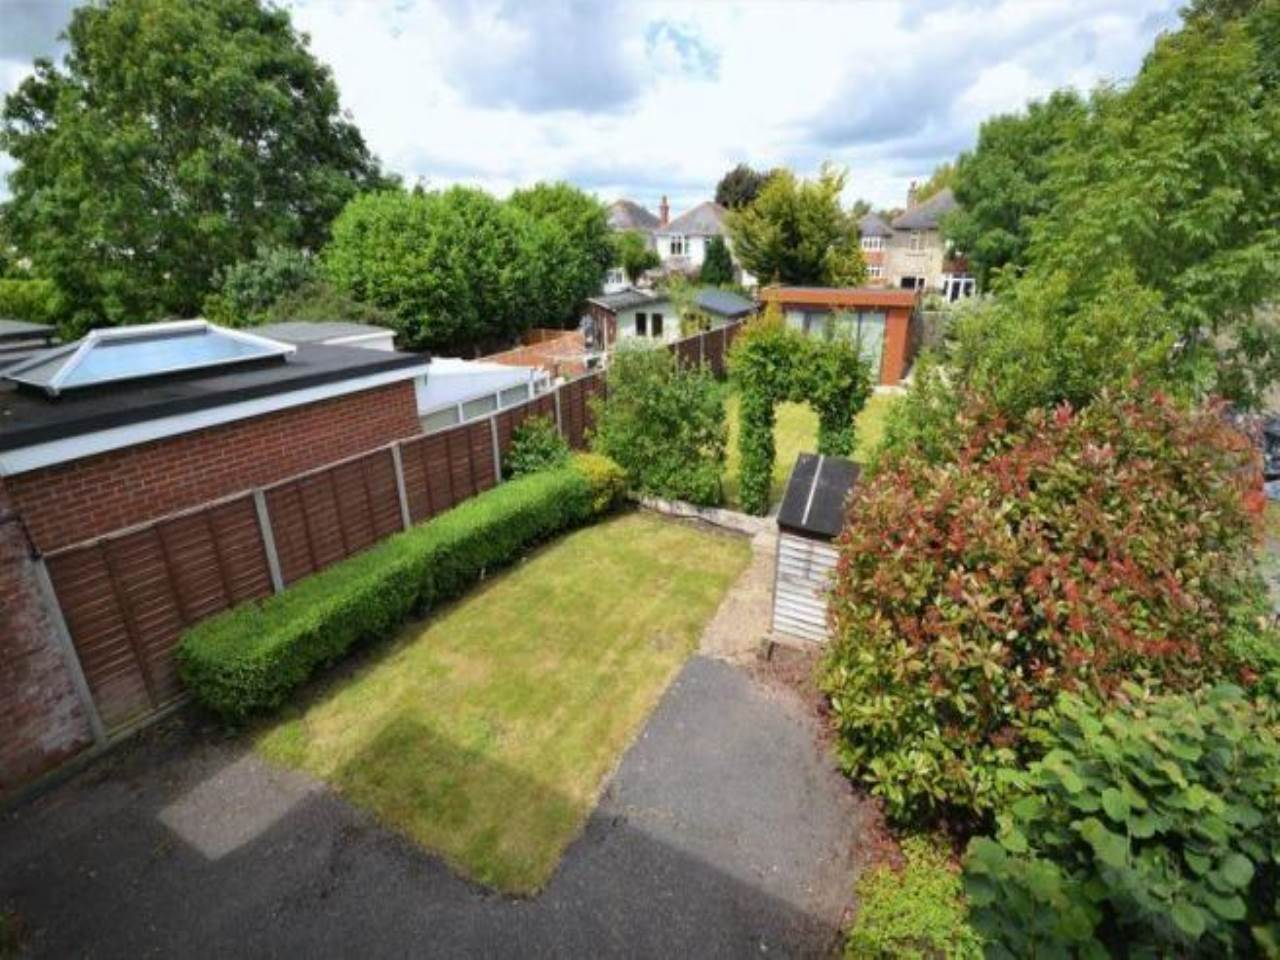 4 bed house for sale in Cowper Road, Moordown  - Property Image 3